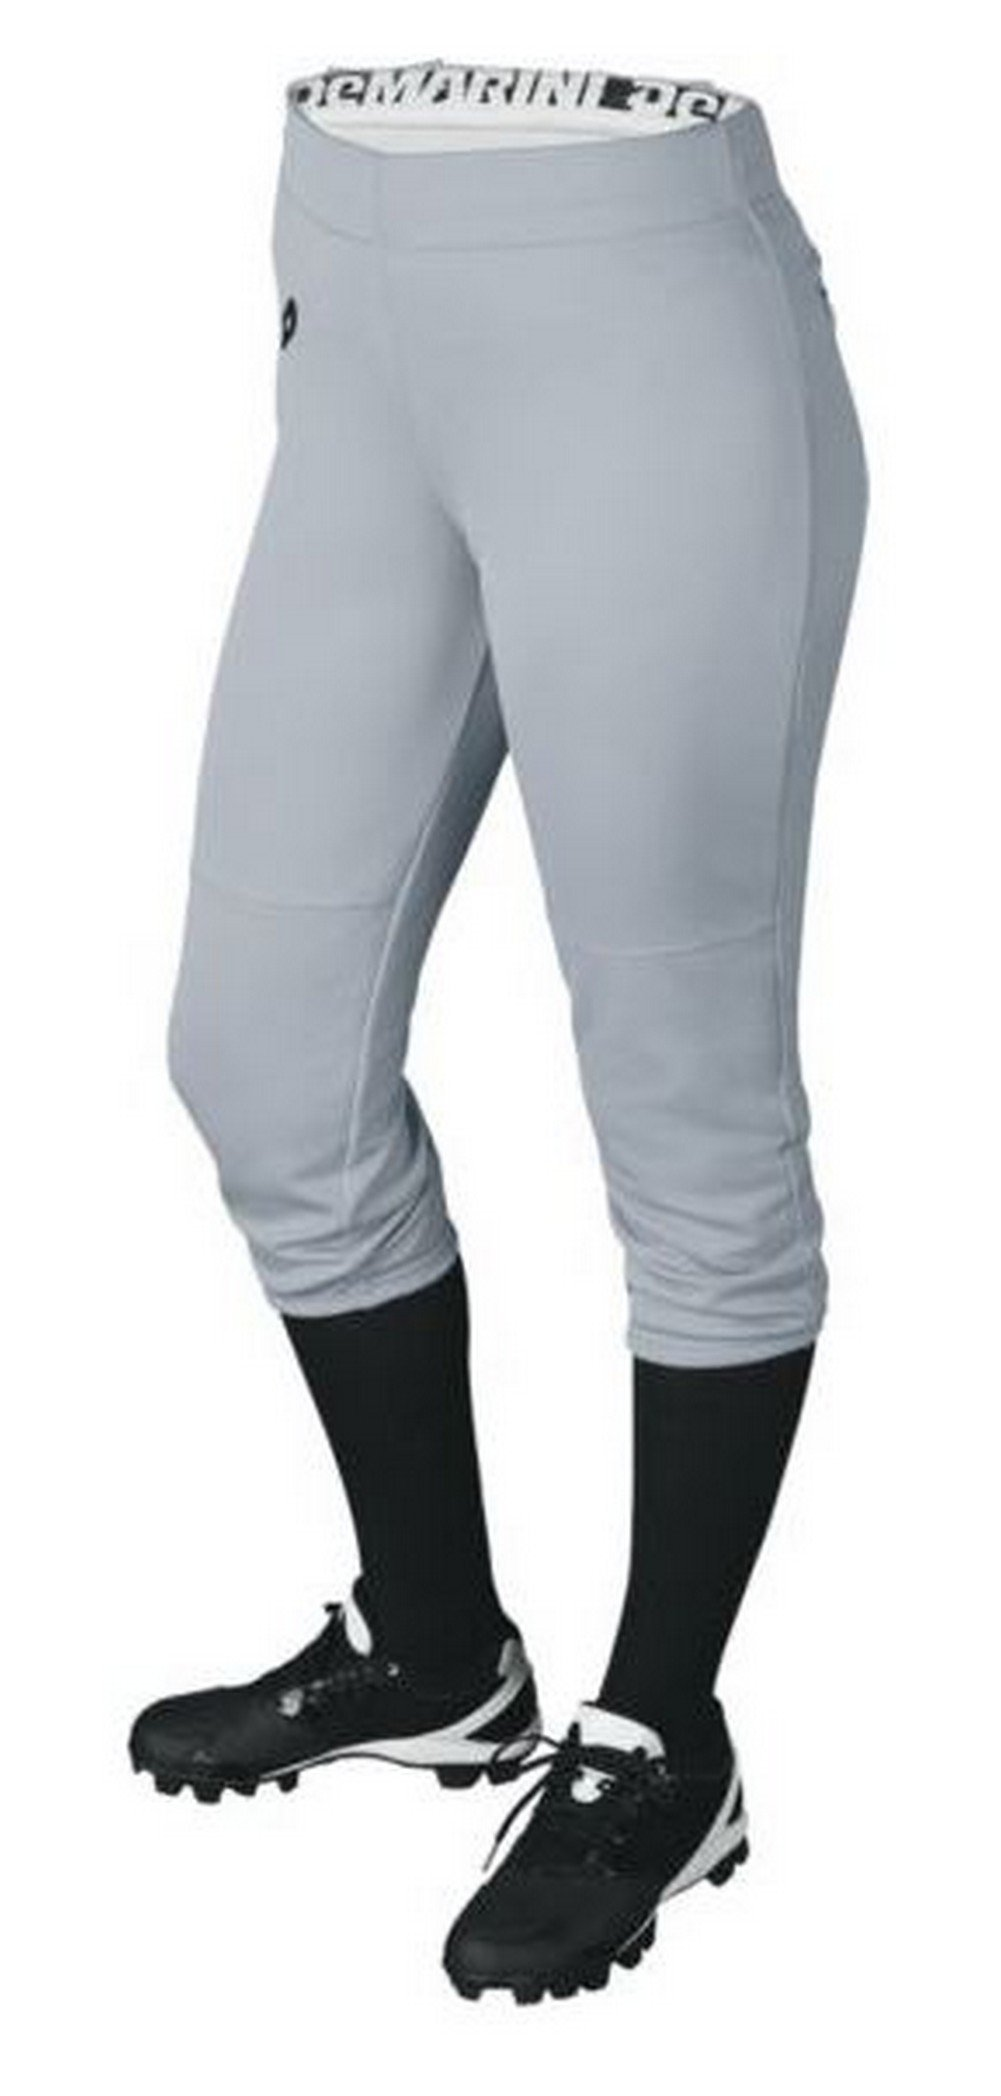 DeMarini Womens Sleek Pull Up Pant, Blue Grey, Small by DeMarini (Image #1)